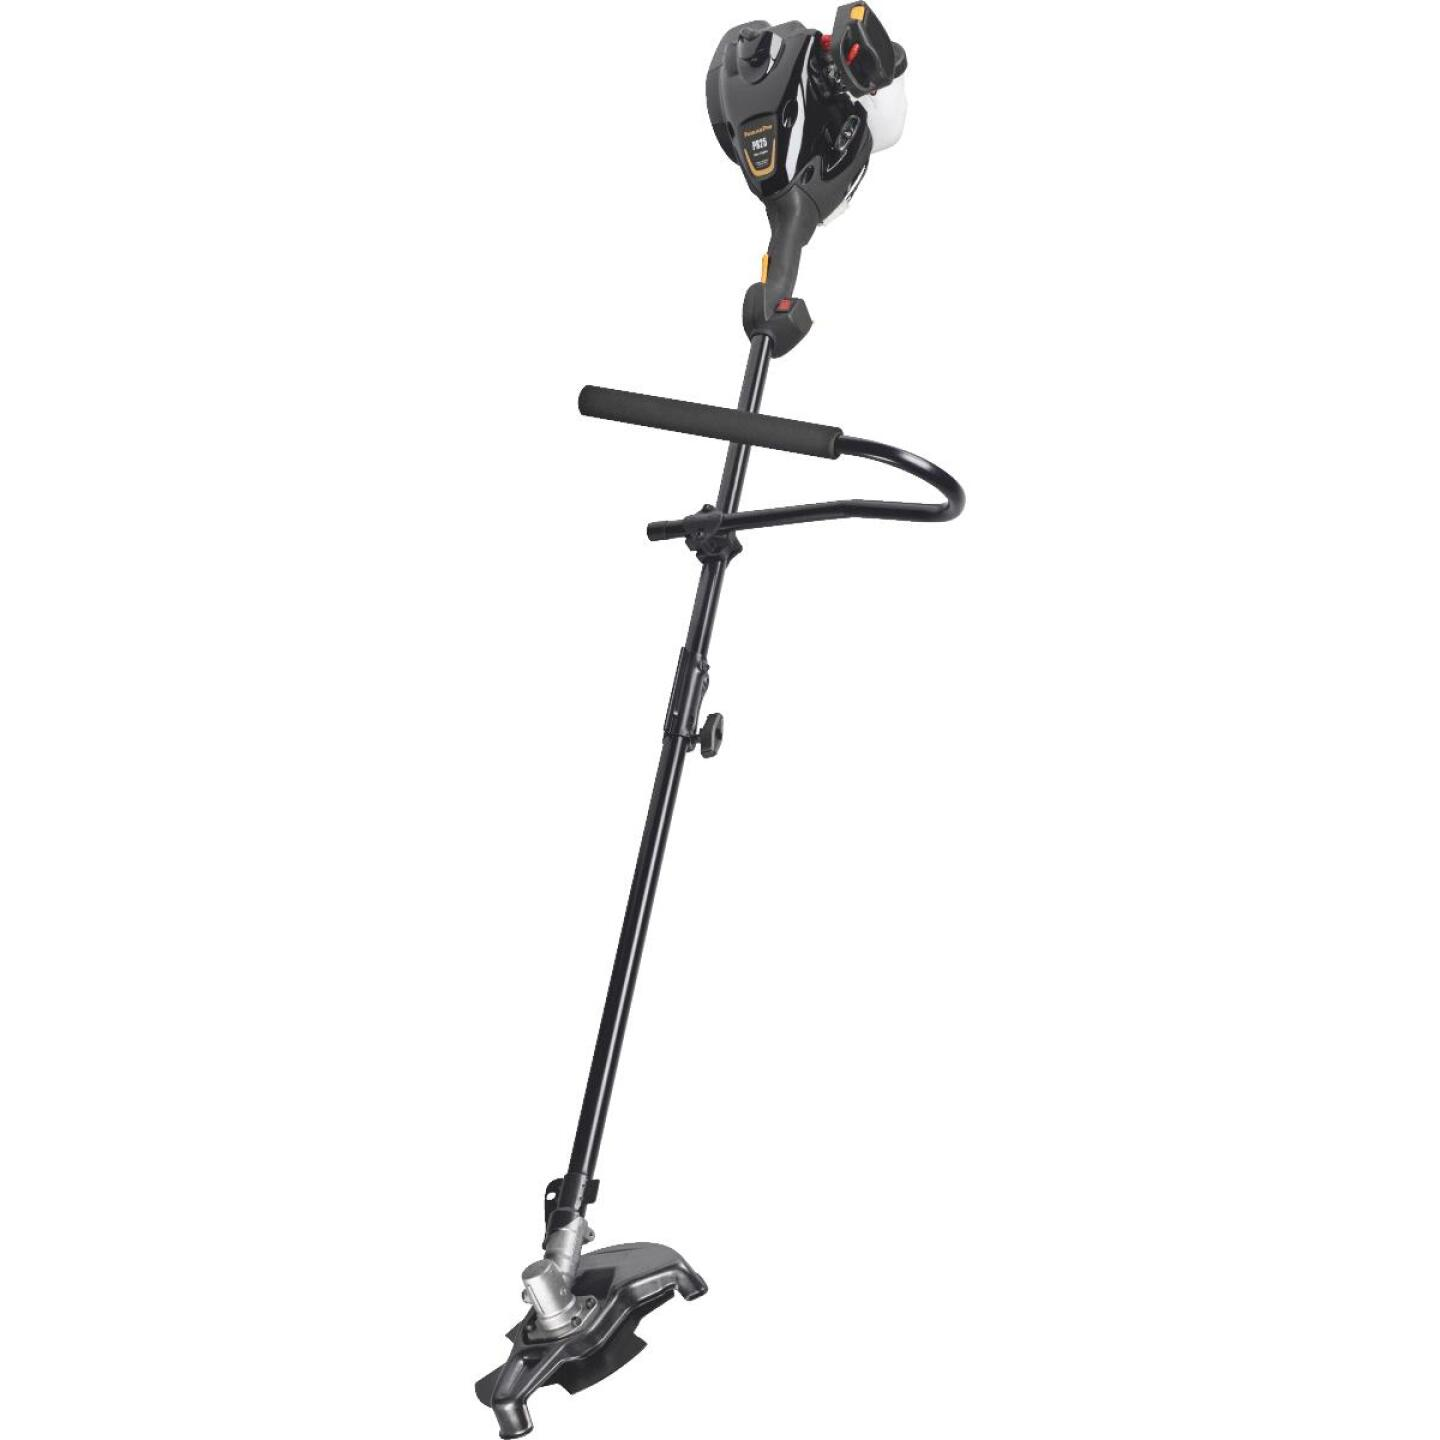 Poulan Pro PR25BC 17 In. 25CC 2-Cycle Straight Gas String Trimmer & Brushcutter Image 1